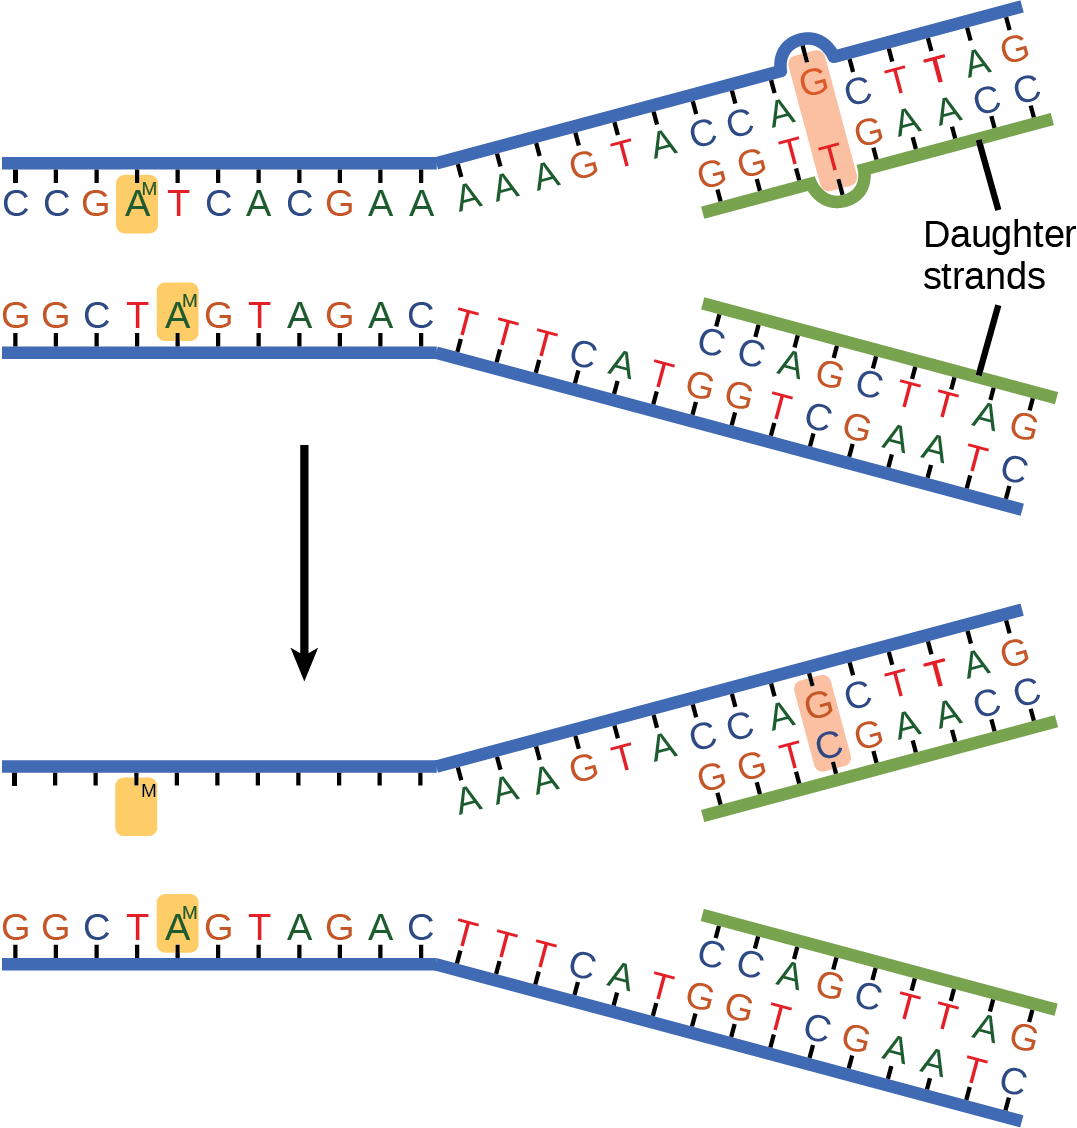 The top illustration shows a replicated DNA strand with G-T base mismatch. The bottom illustration shows the repaired DNA, which has the correct G-C base pairing.